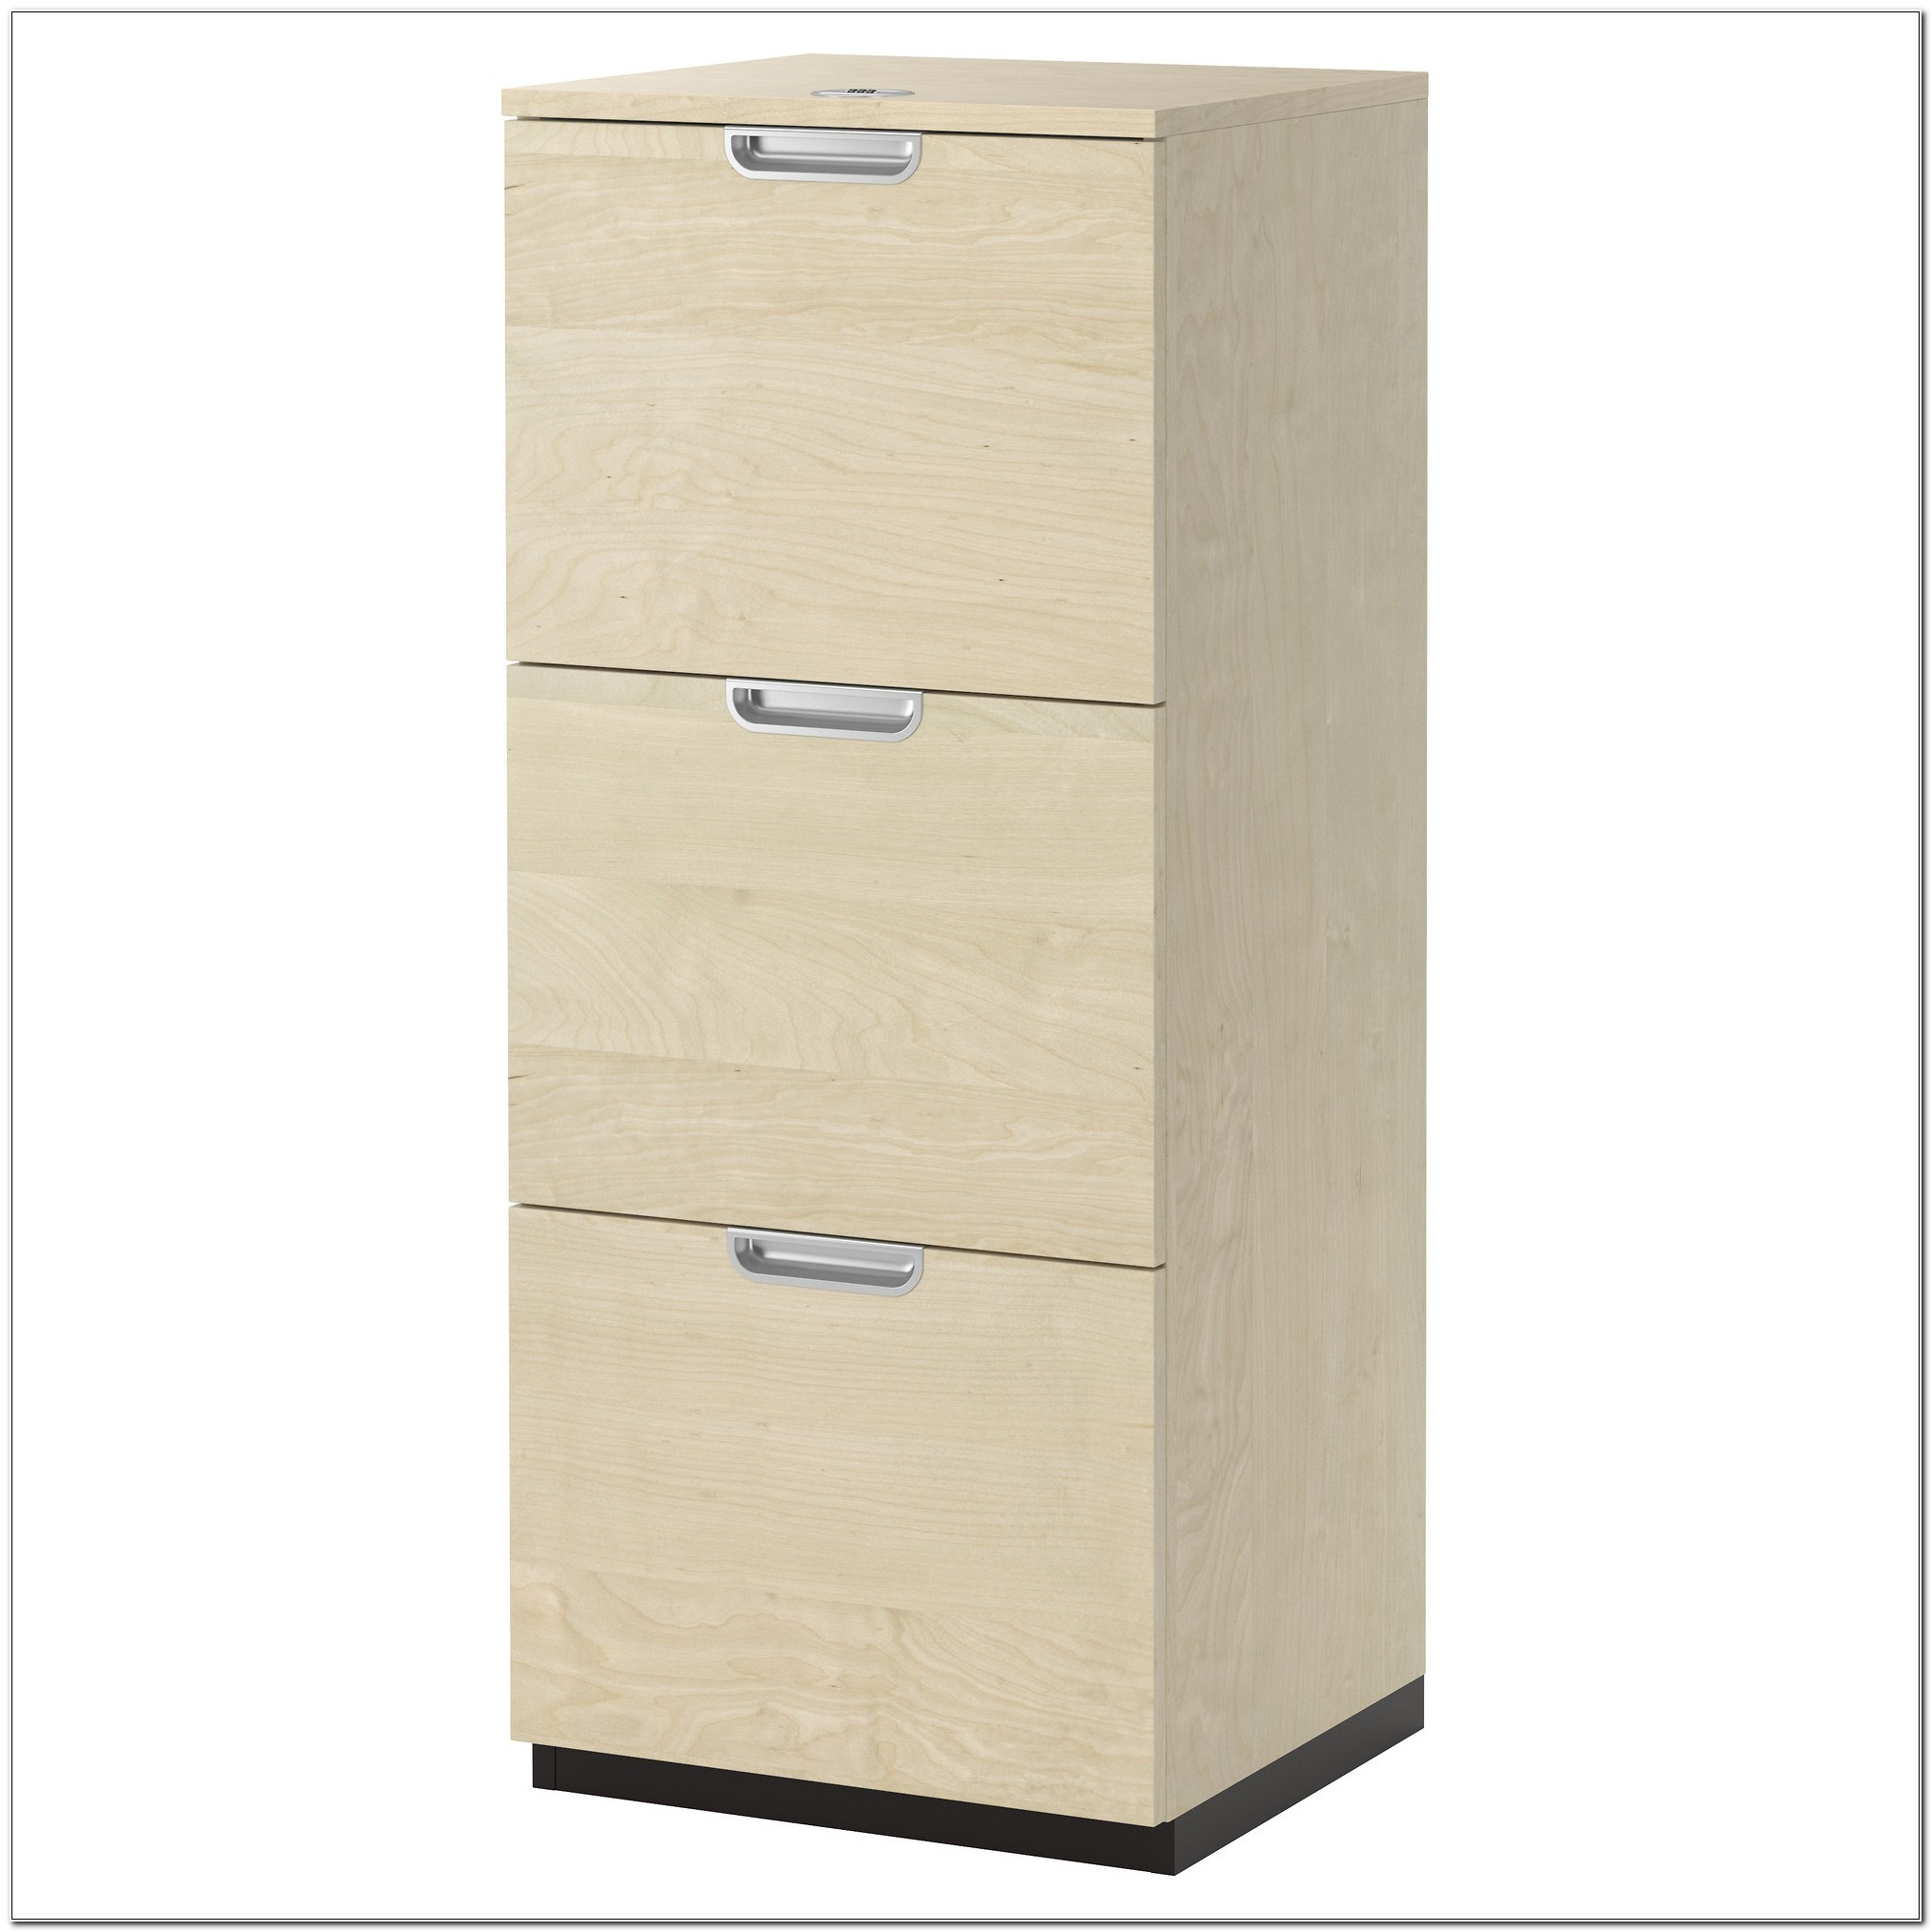 Ikea Galant 3 Drawer File Cabinet